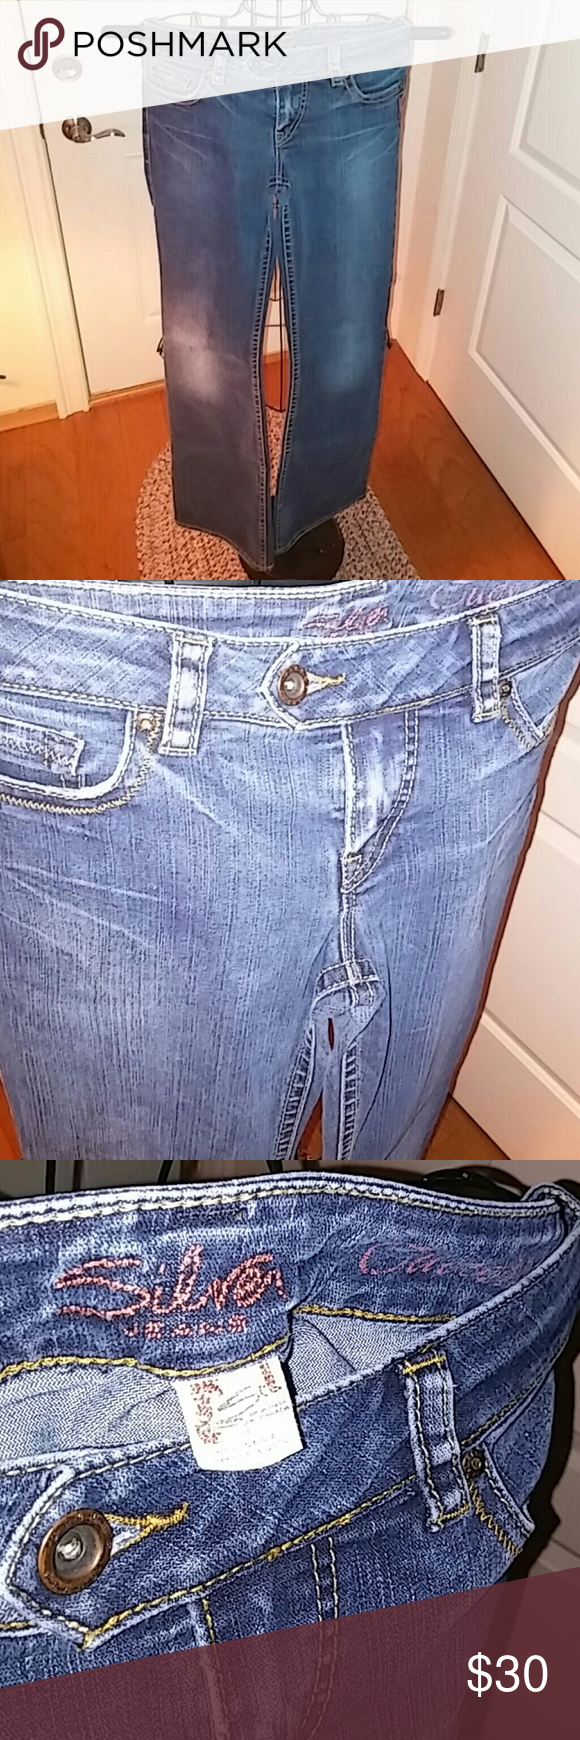 Silver Tuesdays 29x33 Excellent condition Run small in my opinion maybe because the Canada sizing? Silver Jeans Jeans Flare & Wide Leg